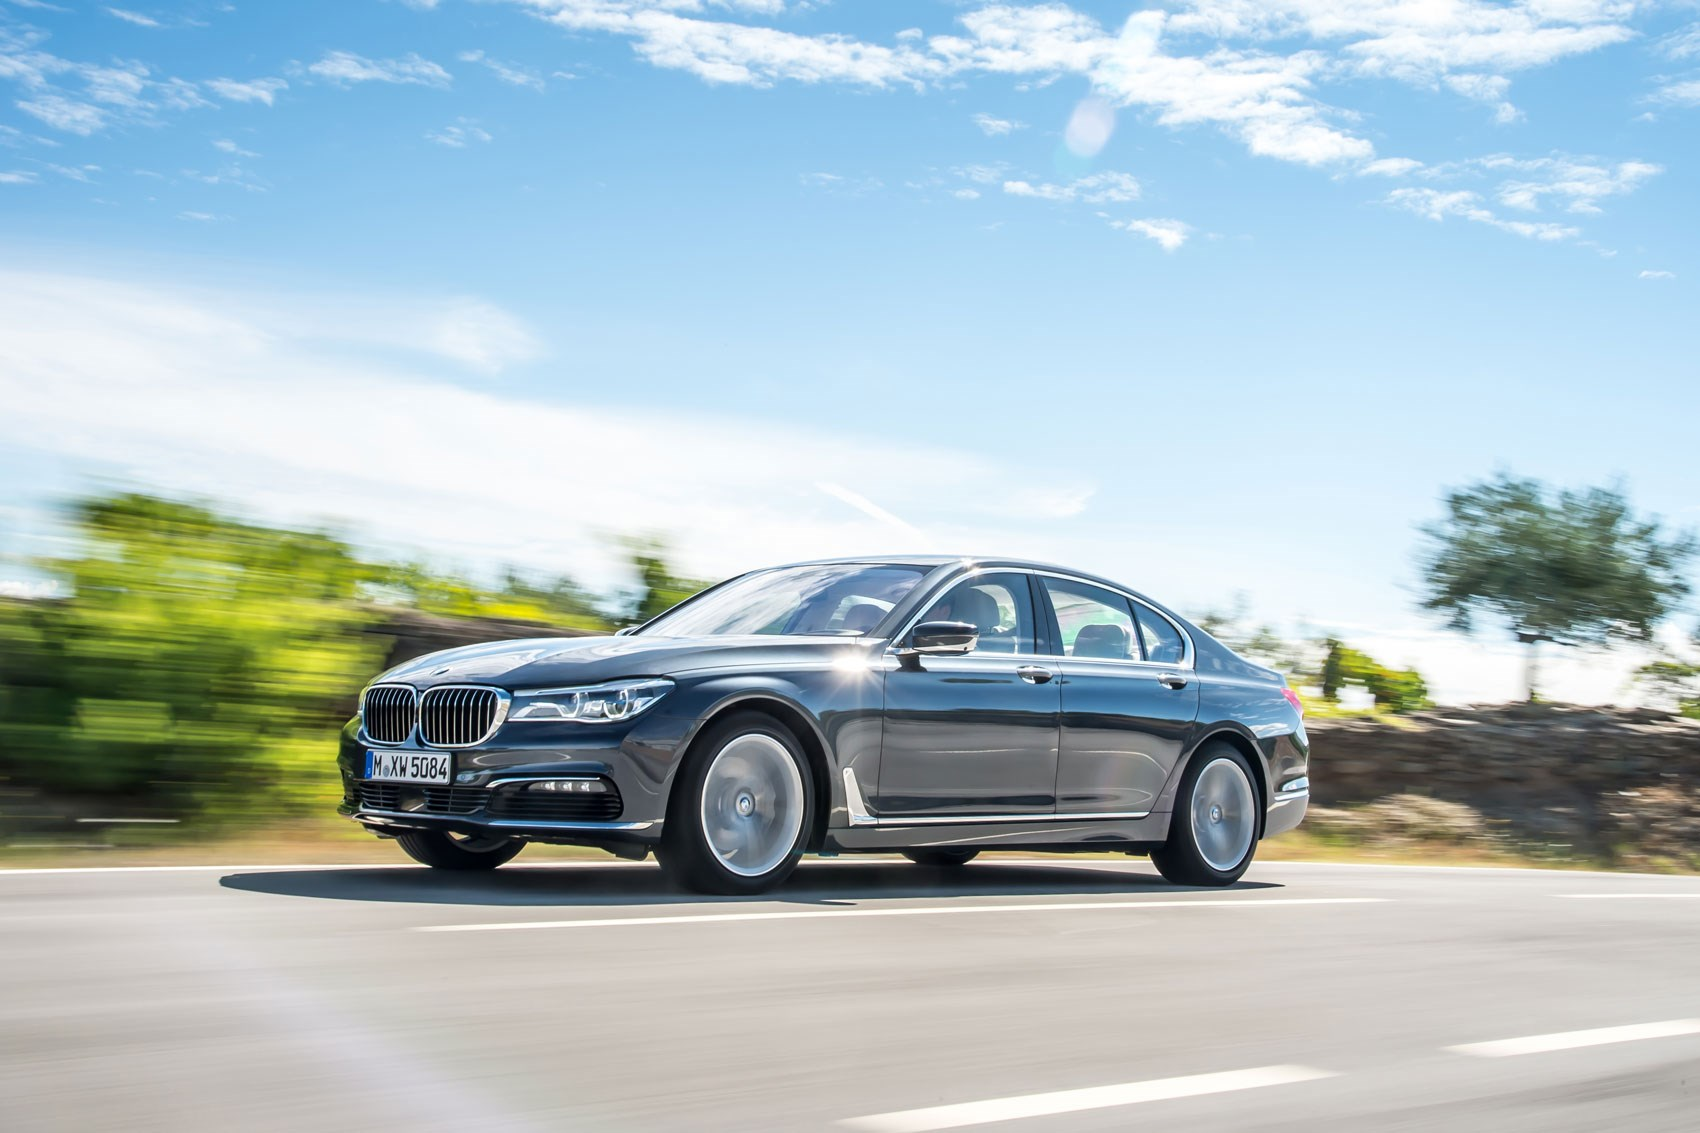 bmw 7 series 730d 2016 review by car magazine. Black Bedroom Furniture Sets. Home Design Ideas